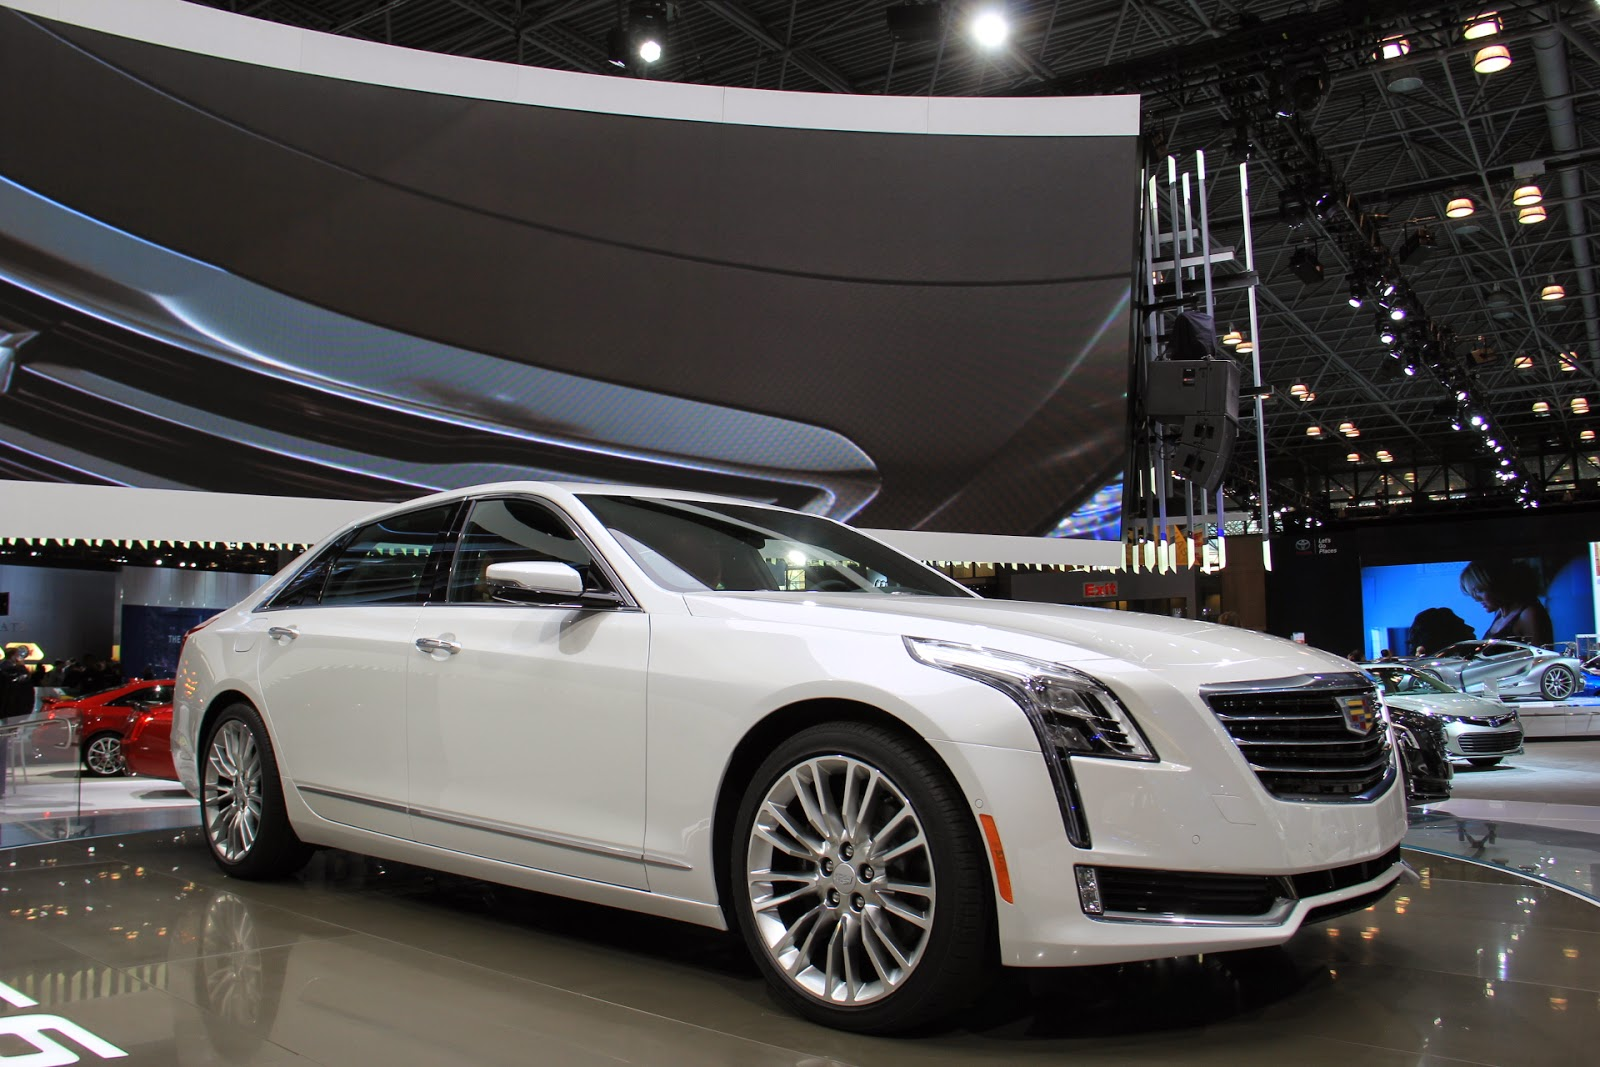 Cadillac Engineer Travis Hester Spills Out The New CT6's ...